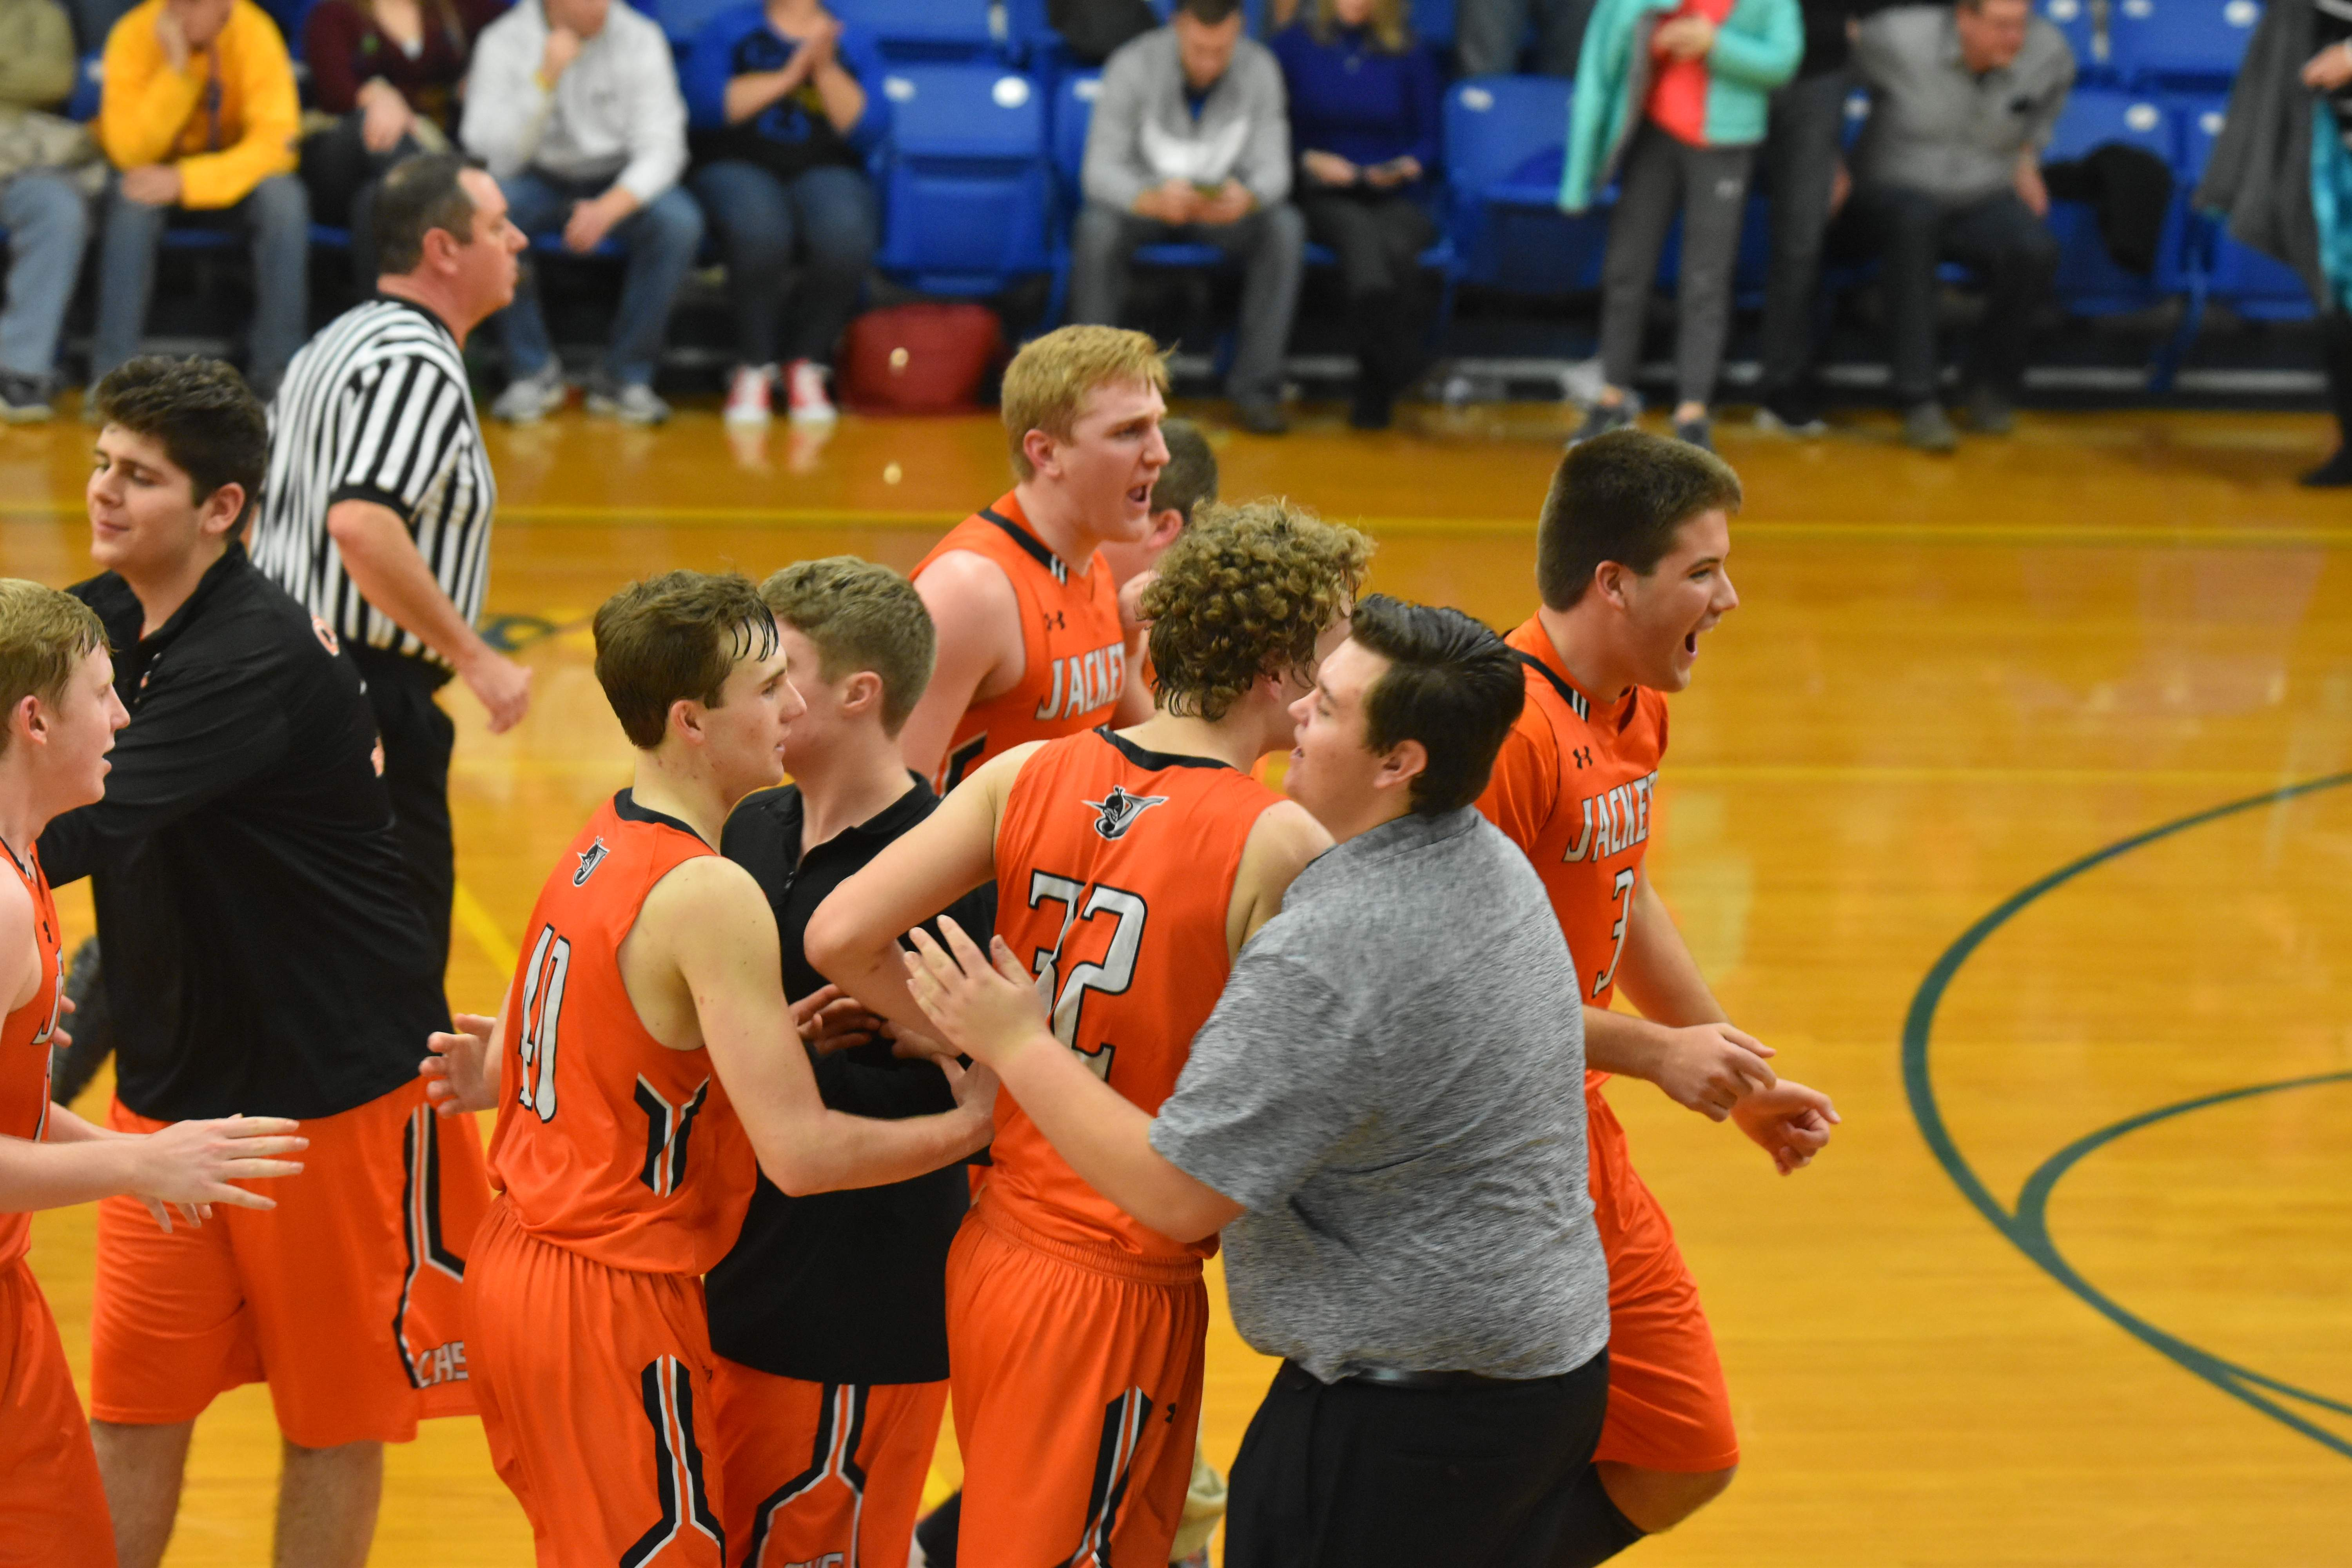 Chester's players celebrate after beating Trico, 73-70, in triple overtime on Friday. The Yellow Jackets improved to 7-2 overall and 2-1 in the BDC West with the win.